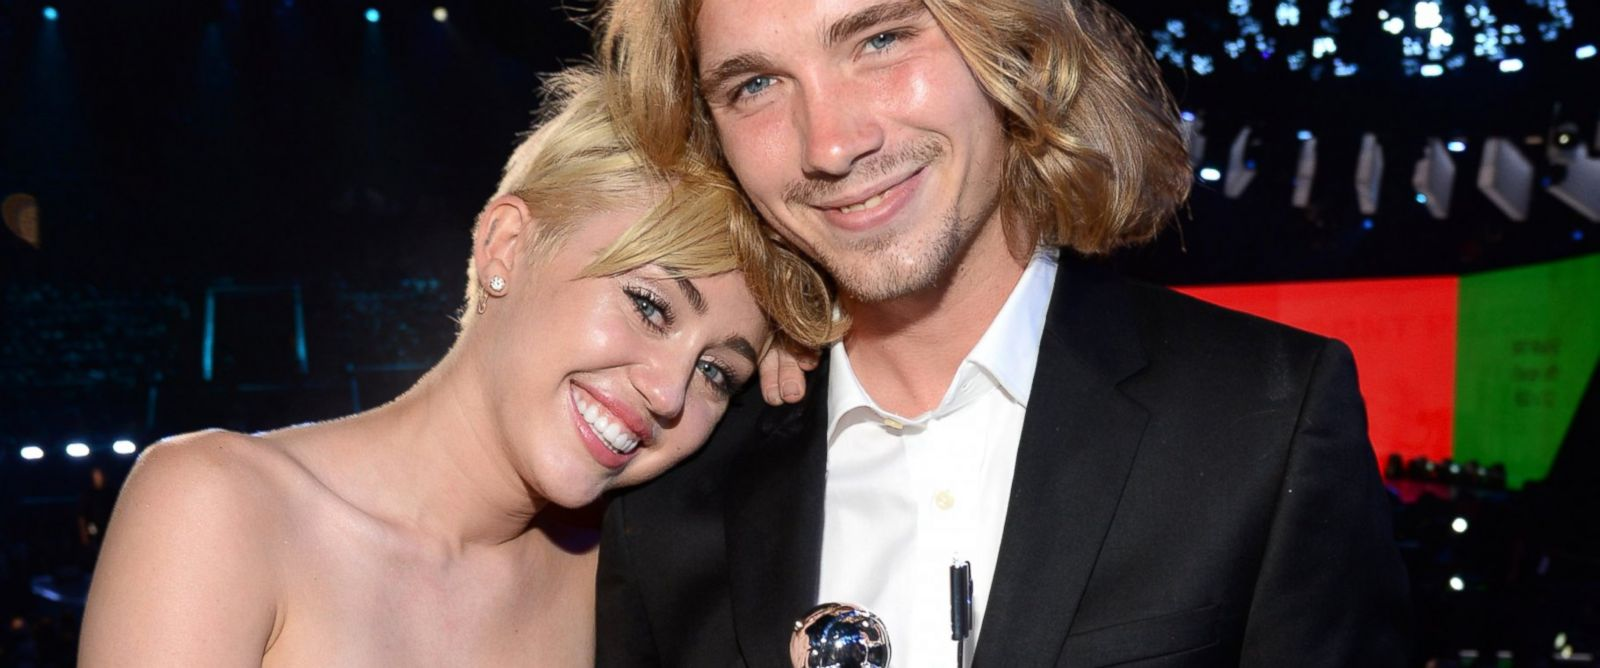 single men in cyrus Miley cyrus opens up about her sexuality as she admits being 'open to every single thing' with women have been just as serious as her ones with men.